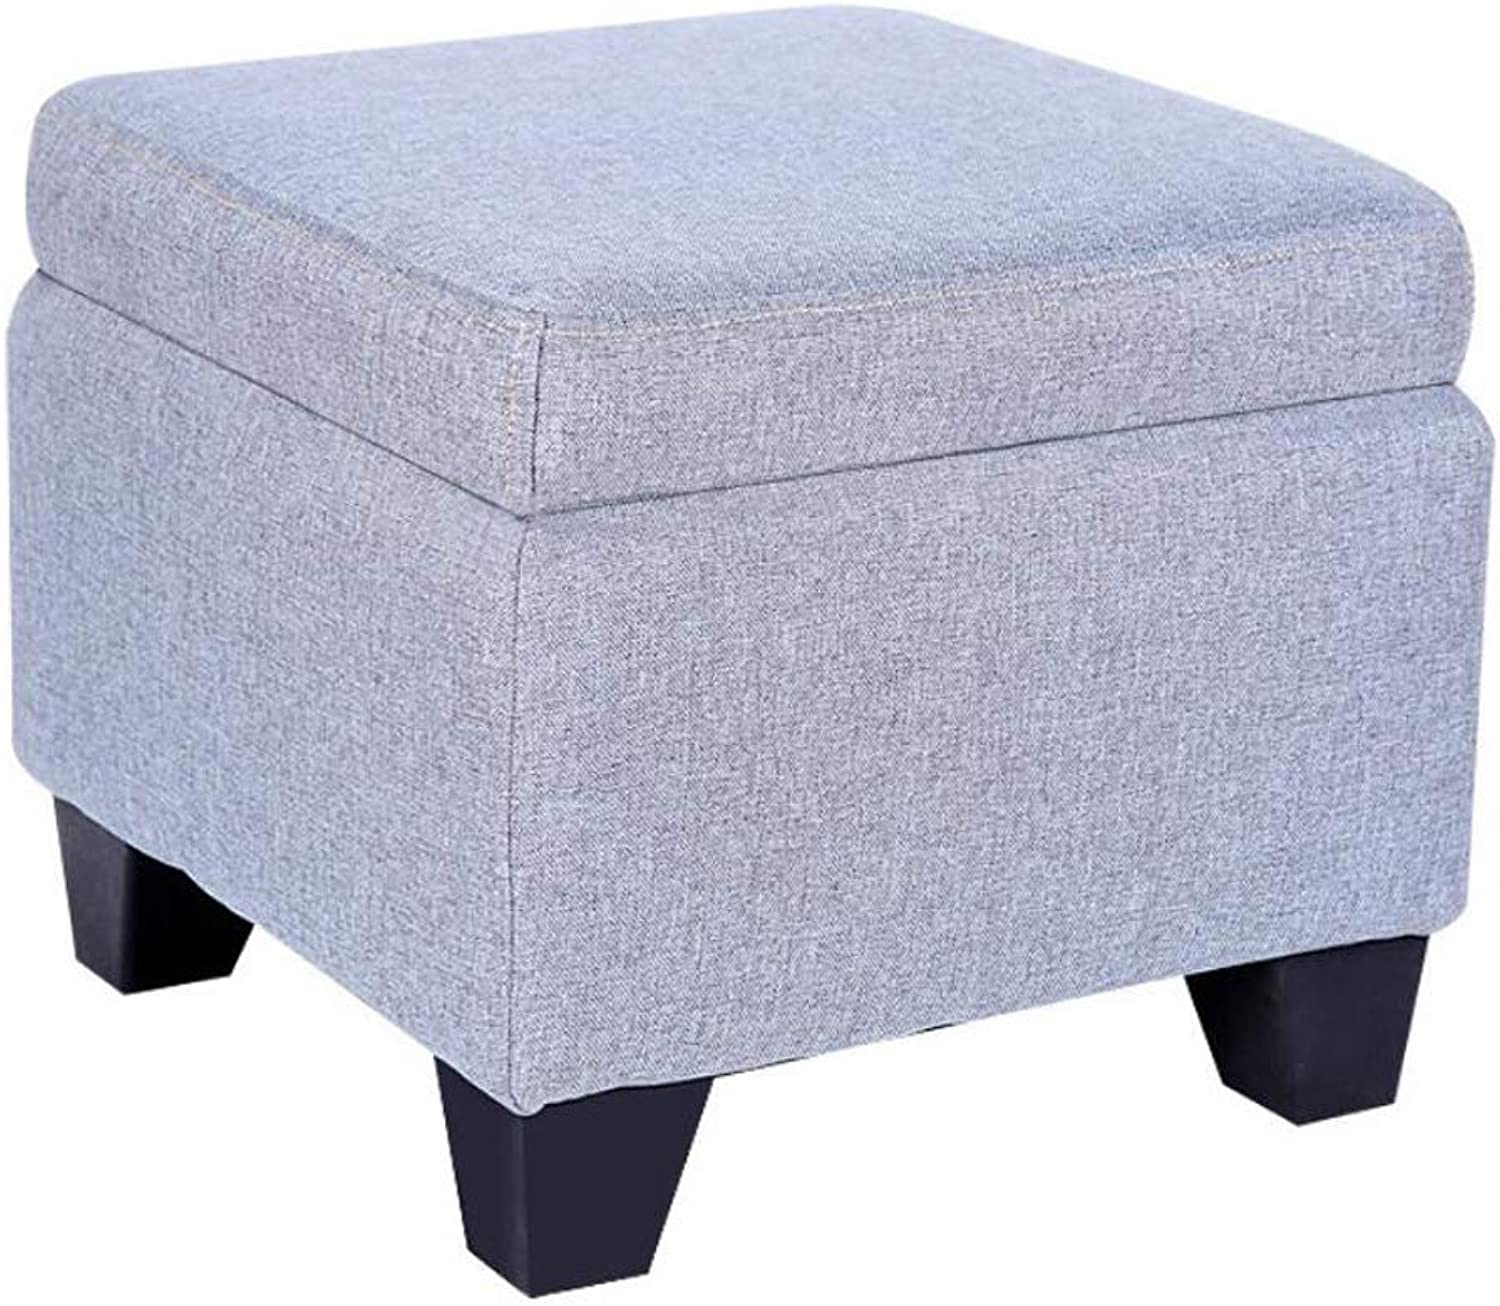 Storage Stool Soft and Environmentally Friendly Breathable wear-Resistant Stool Living Room Sofa Bench Multifunction (color   Purple)